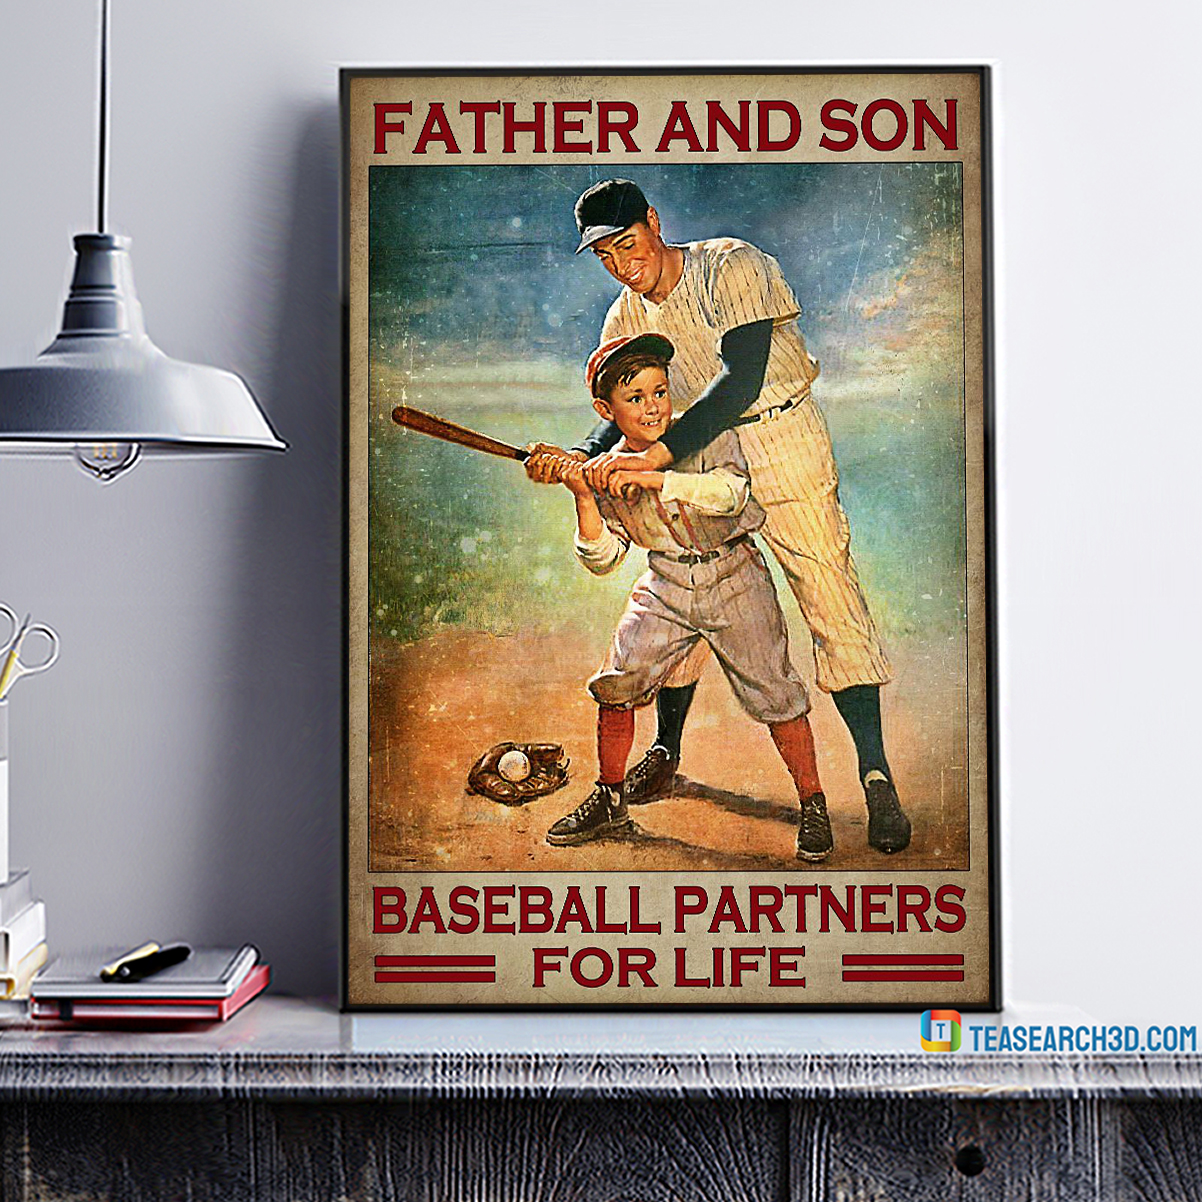 Father and son baseball partners for life poster A1